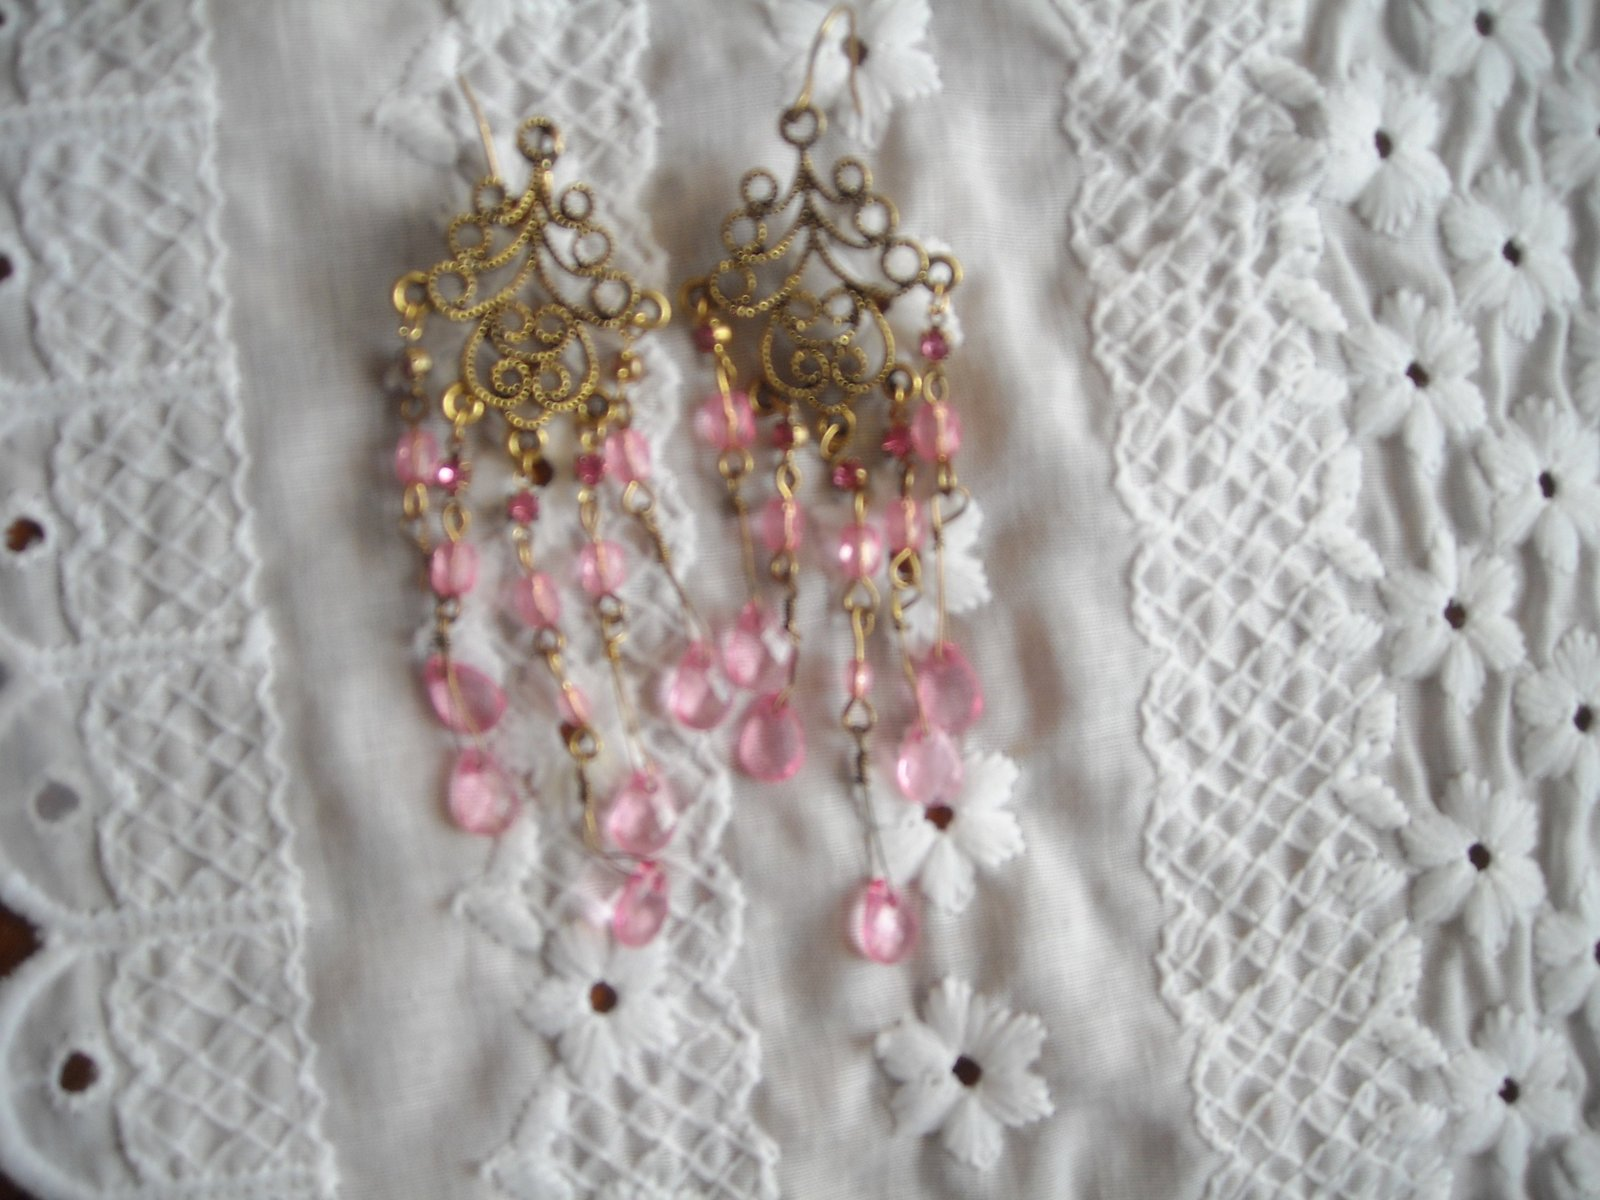 Fashion Earrings Pink Faceted Glass Beads & Pink Rhinestones Gold Tone Filigree